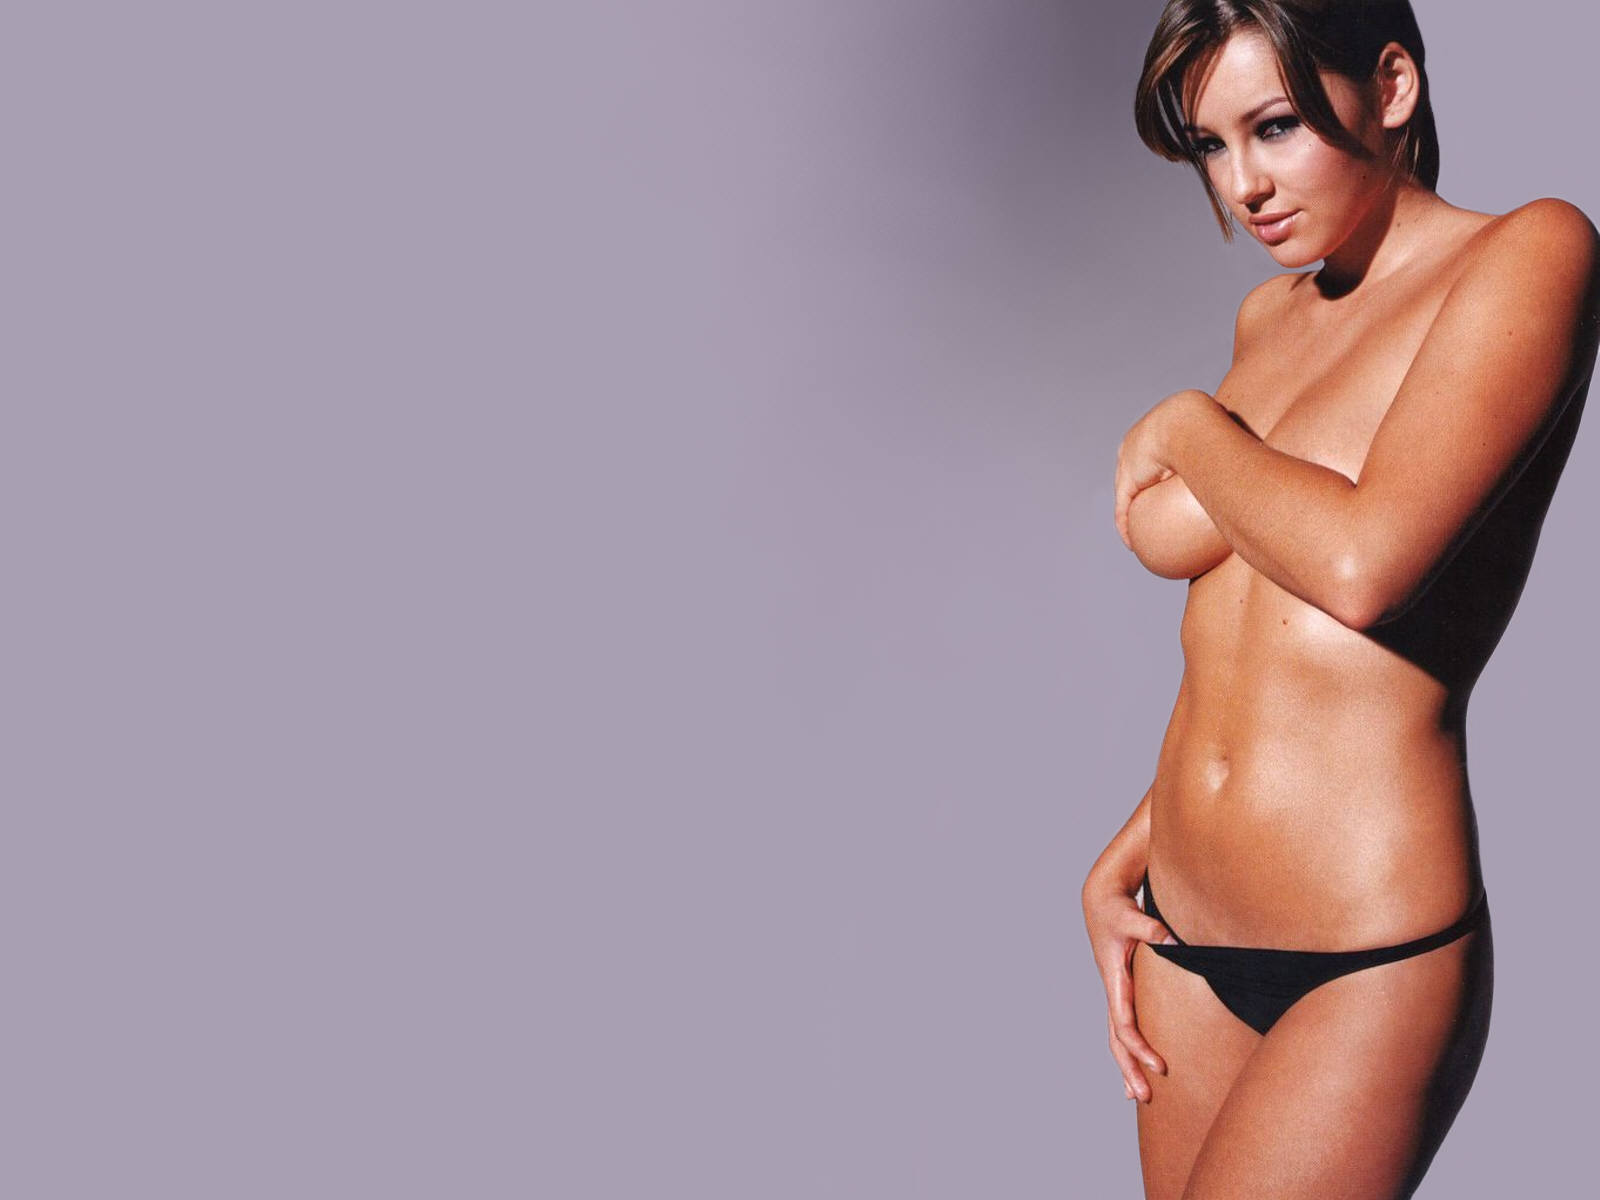 cj miles and her men same nude